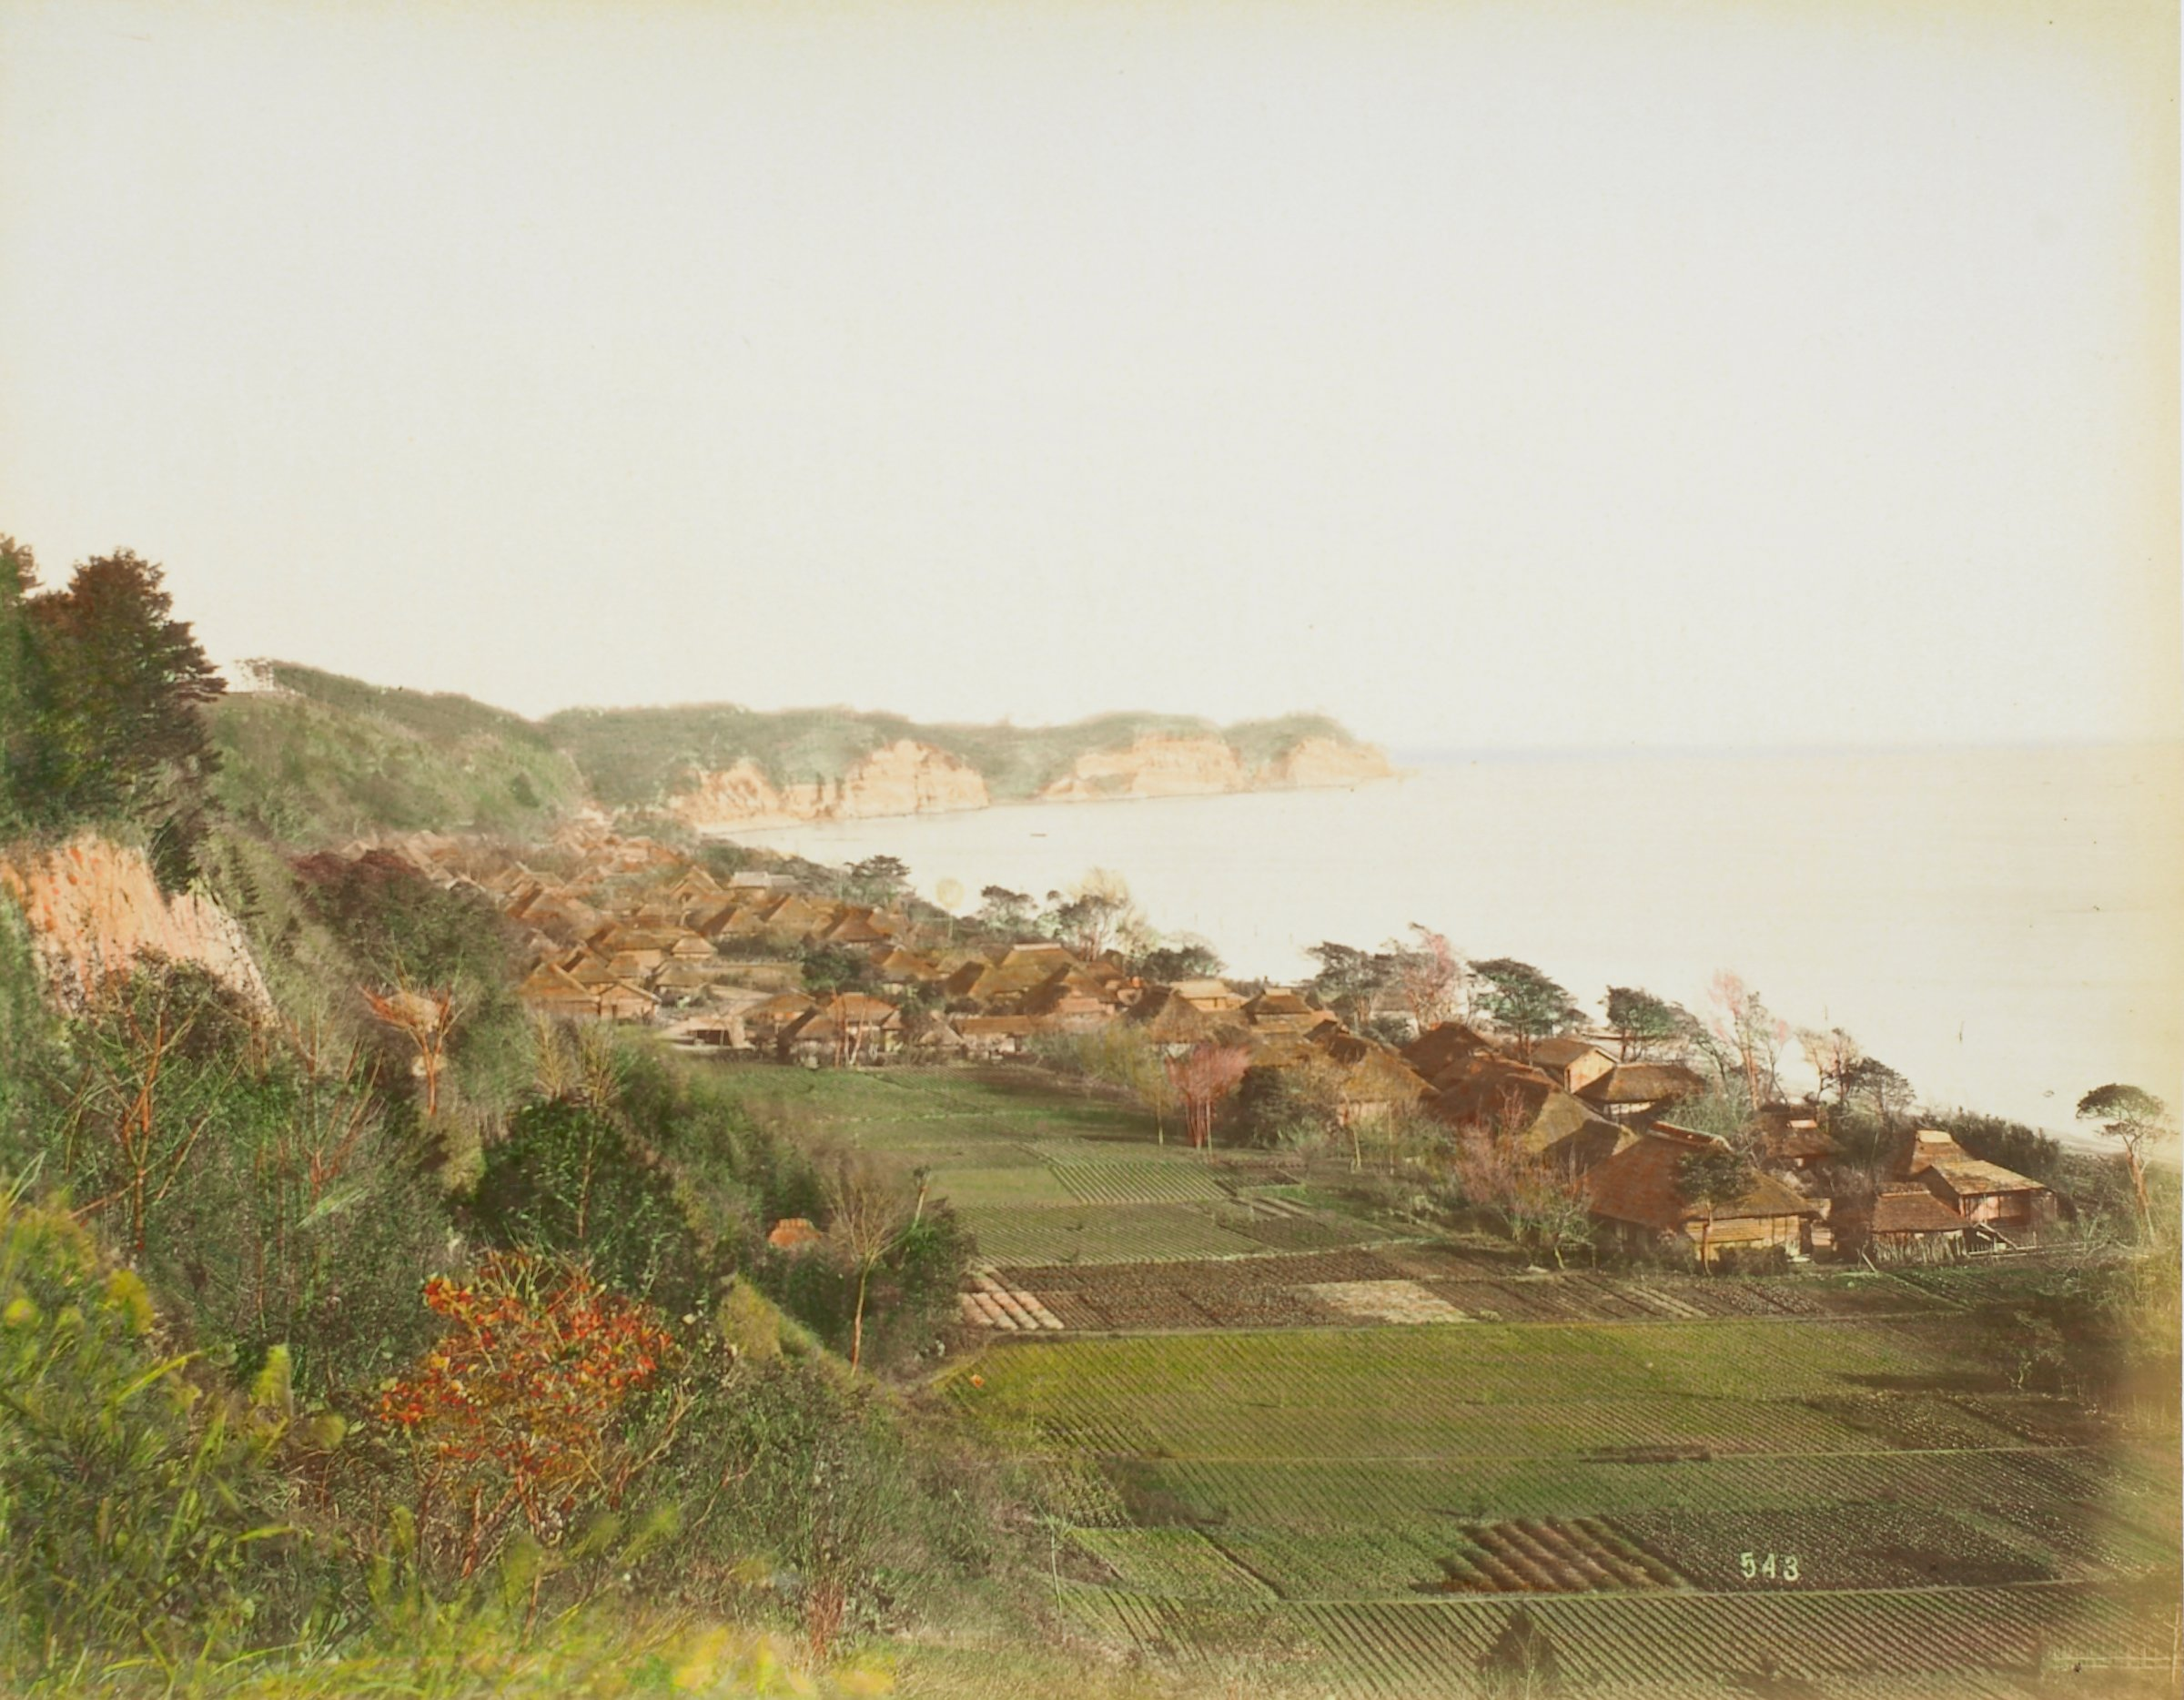 View of Mississippi Bay, Yokohama (.26, recto); Shinto Temple Hachiman (.27, verso), Attributed to Kusakabe Kimbei, hand-colored albumen prints mounted to album page